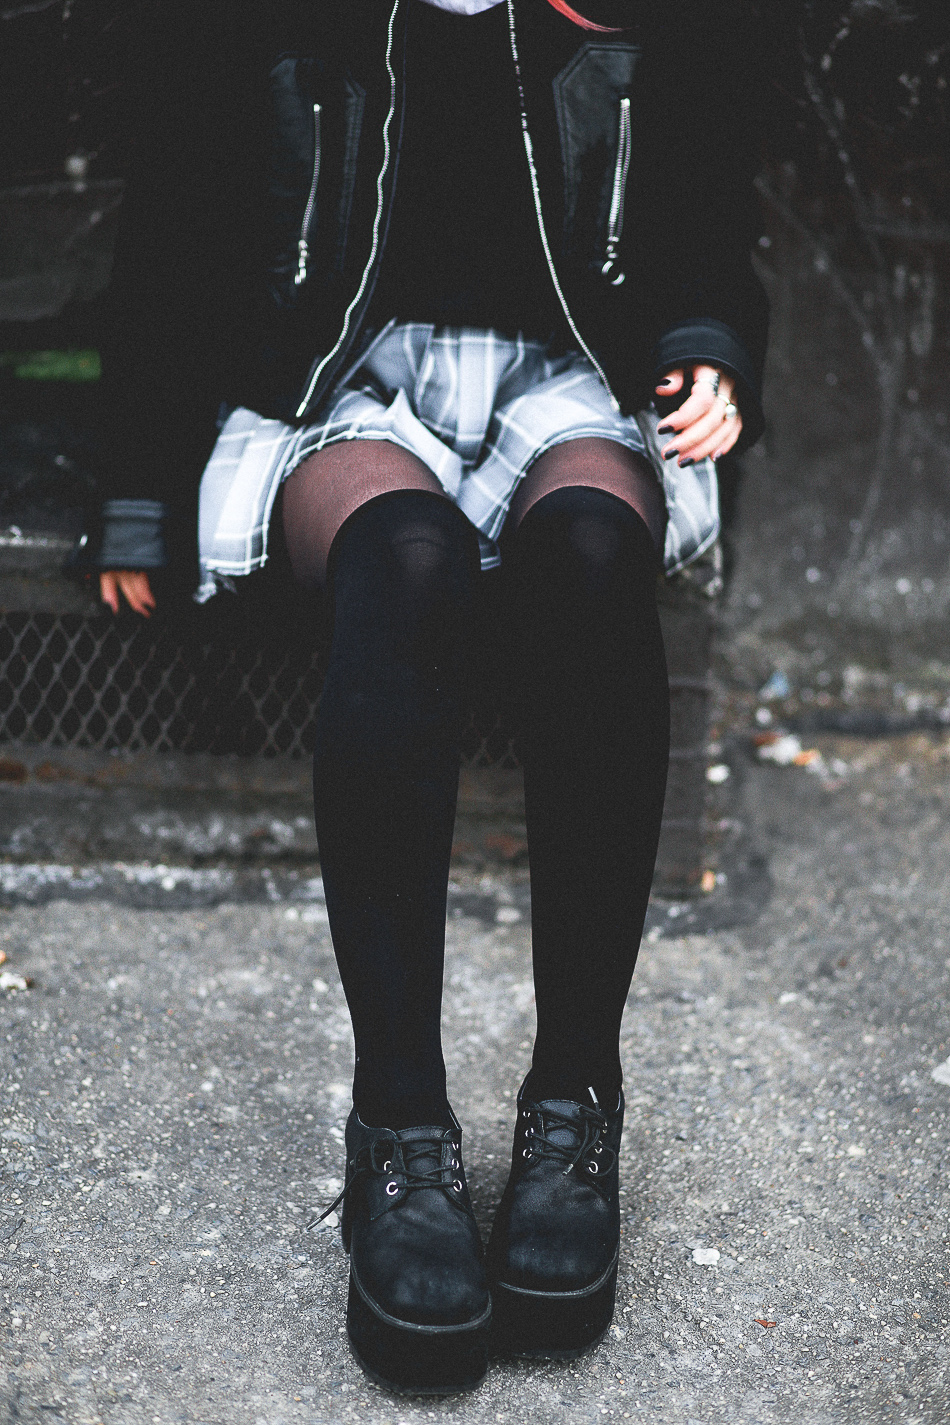 Le Happy wearing thigh high socks and plaid skirt